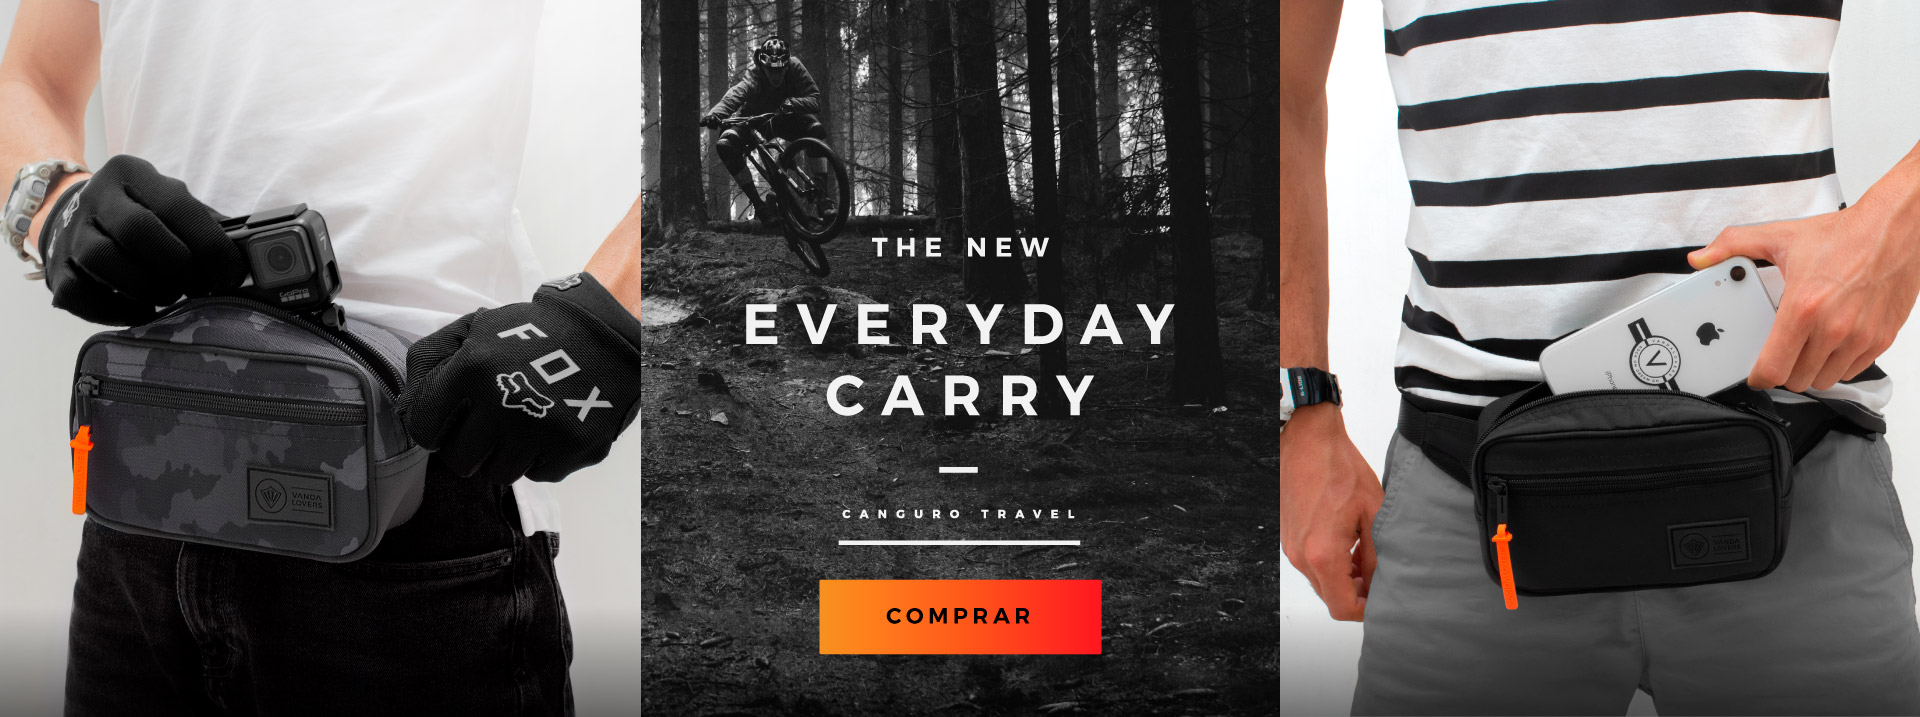 Canguros Travel Vandalovers